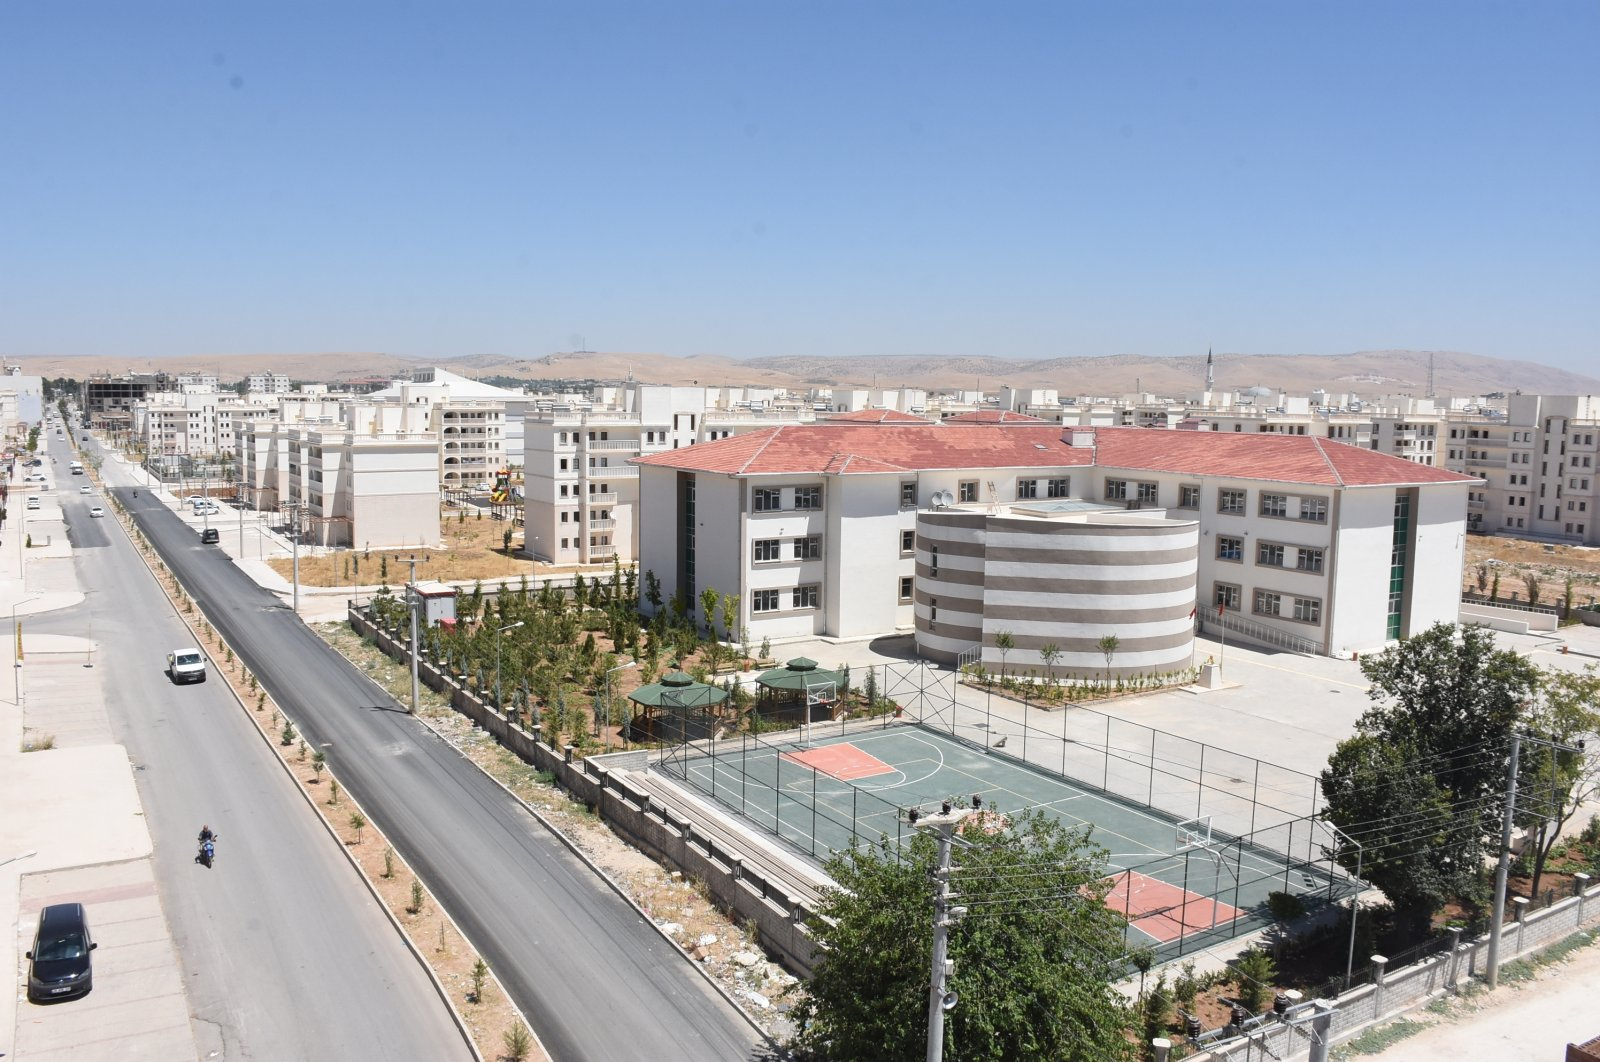 Last year, three new schools were constructed in the Nusaybin to replace the old ones, and the number has risen to eight in 2020 with the addition of five new schools, Aug. 10, 2020. (AA Photo)